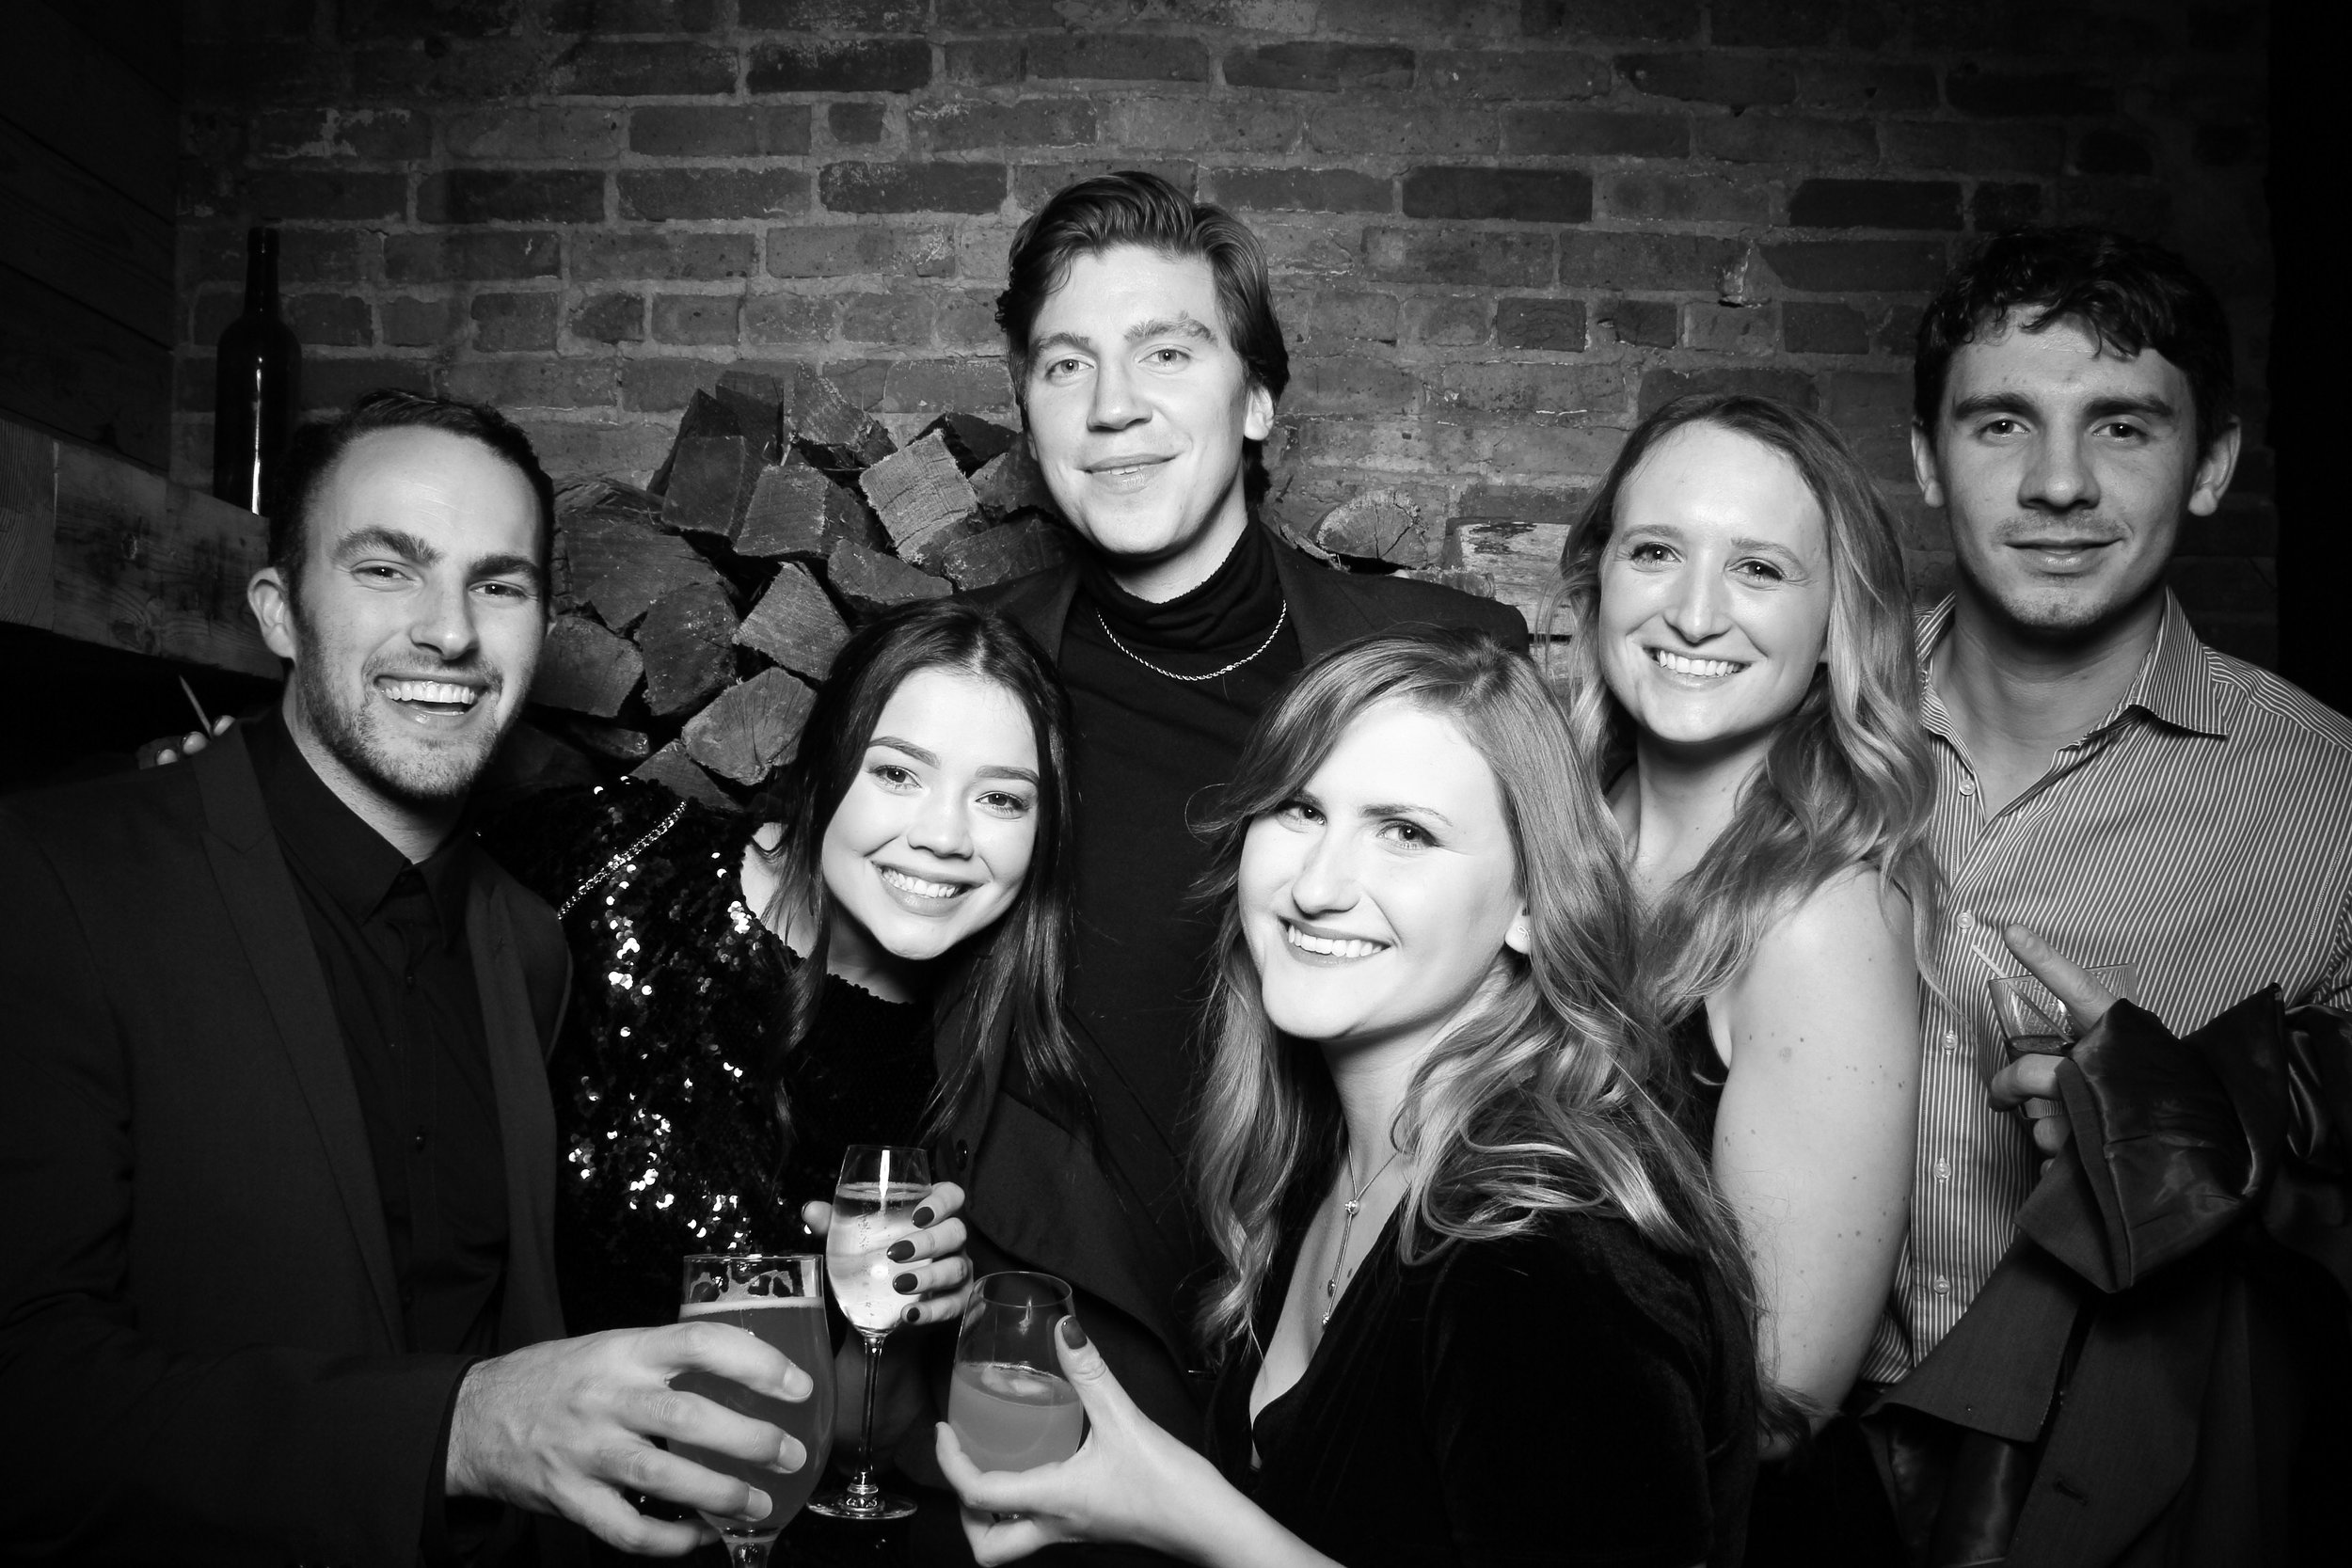 City_Winery_Chicago_Holiday_Party_Event_Wedding_Reception_Photo_Booth_23.jpg